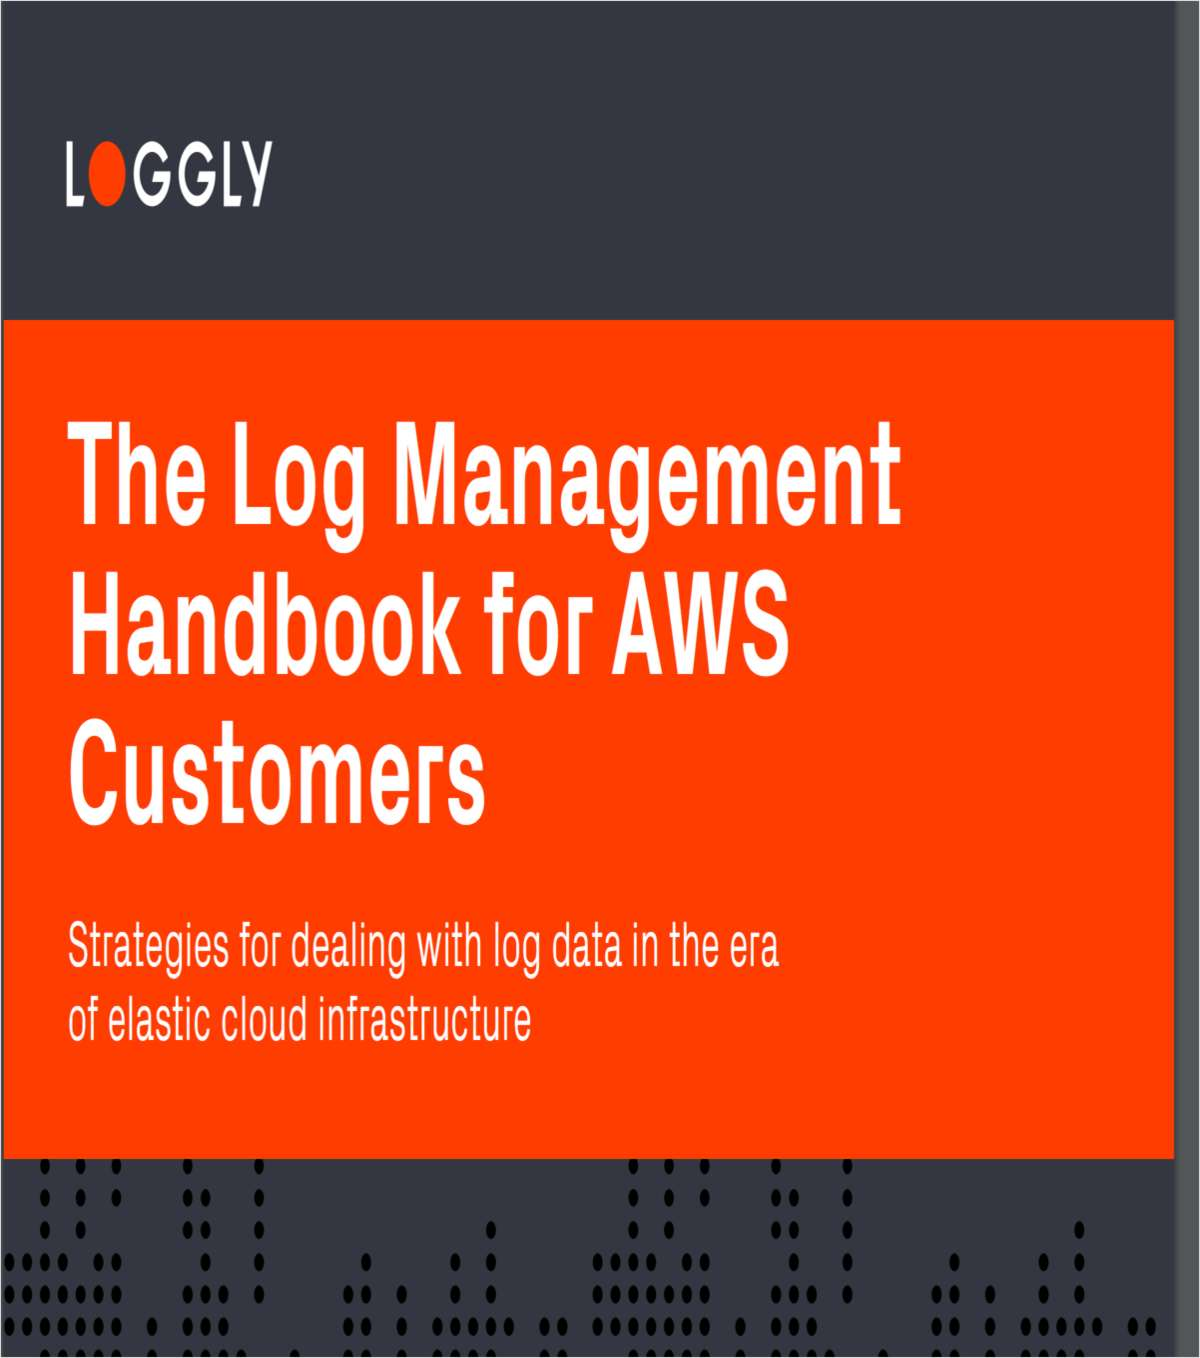 Free eBook: How to Mitigate Downtime and Errors in AWS Using Loggly